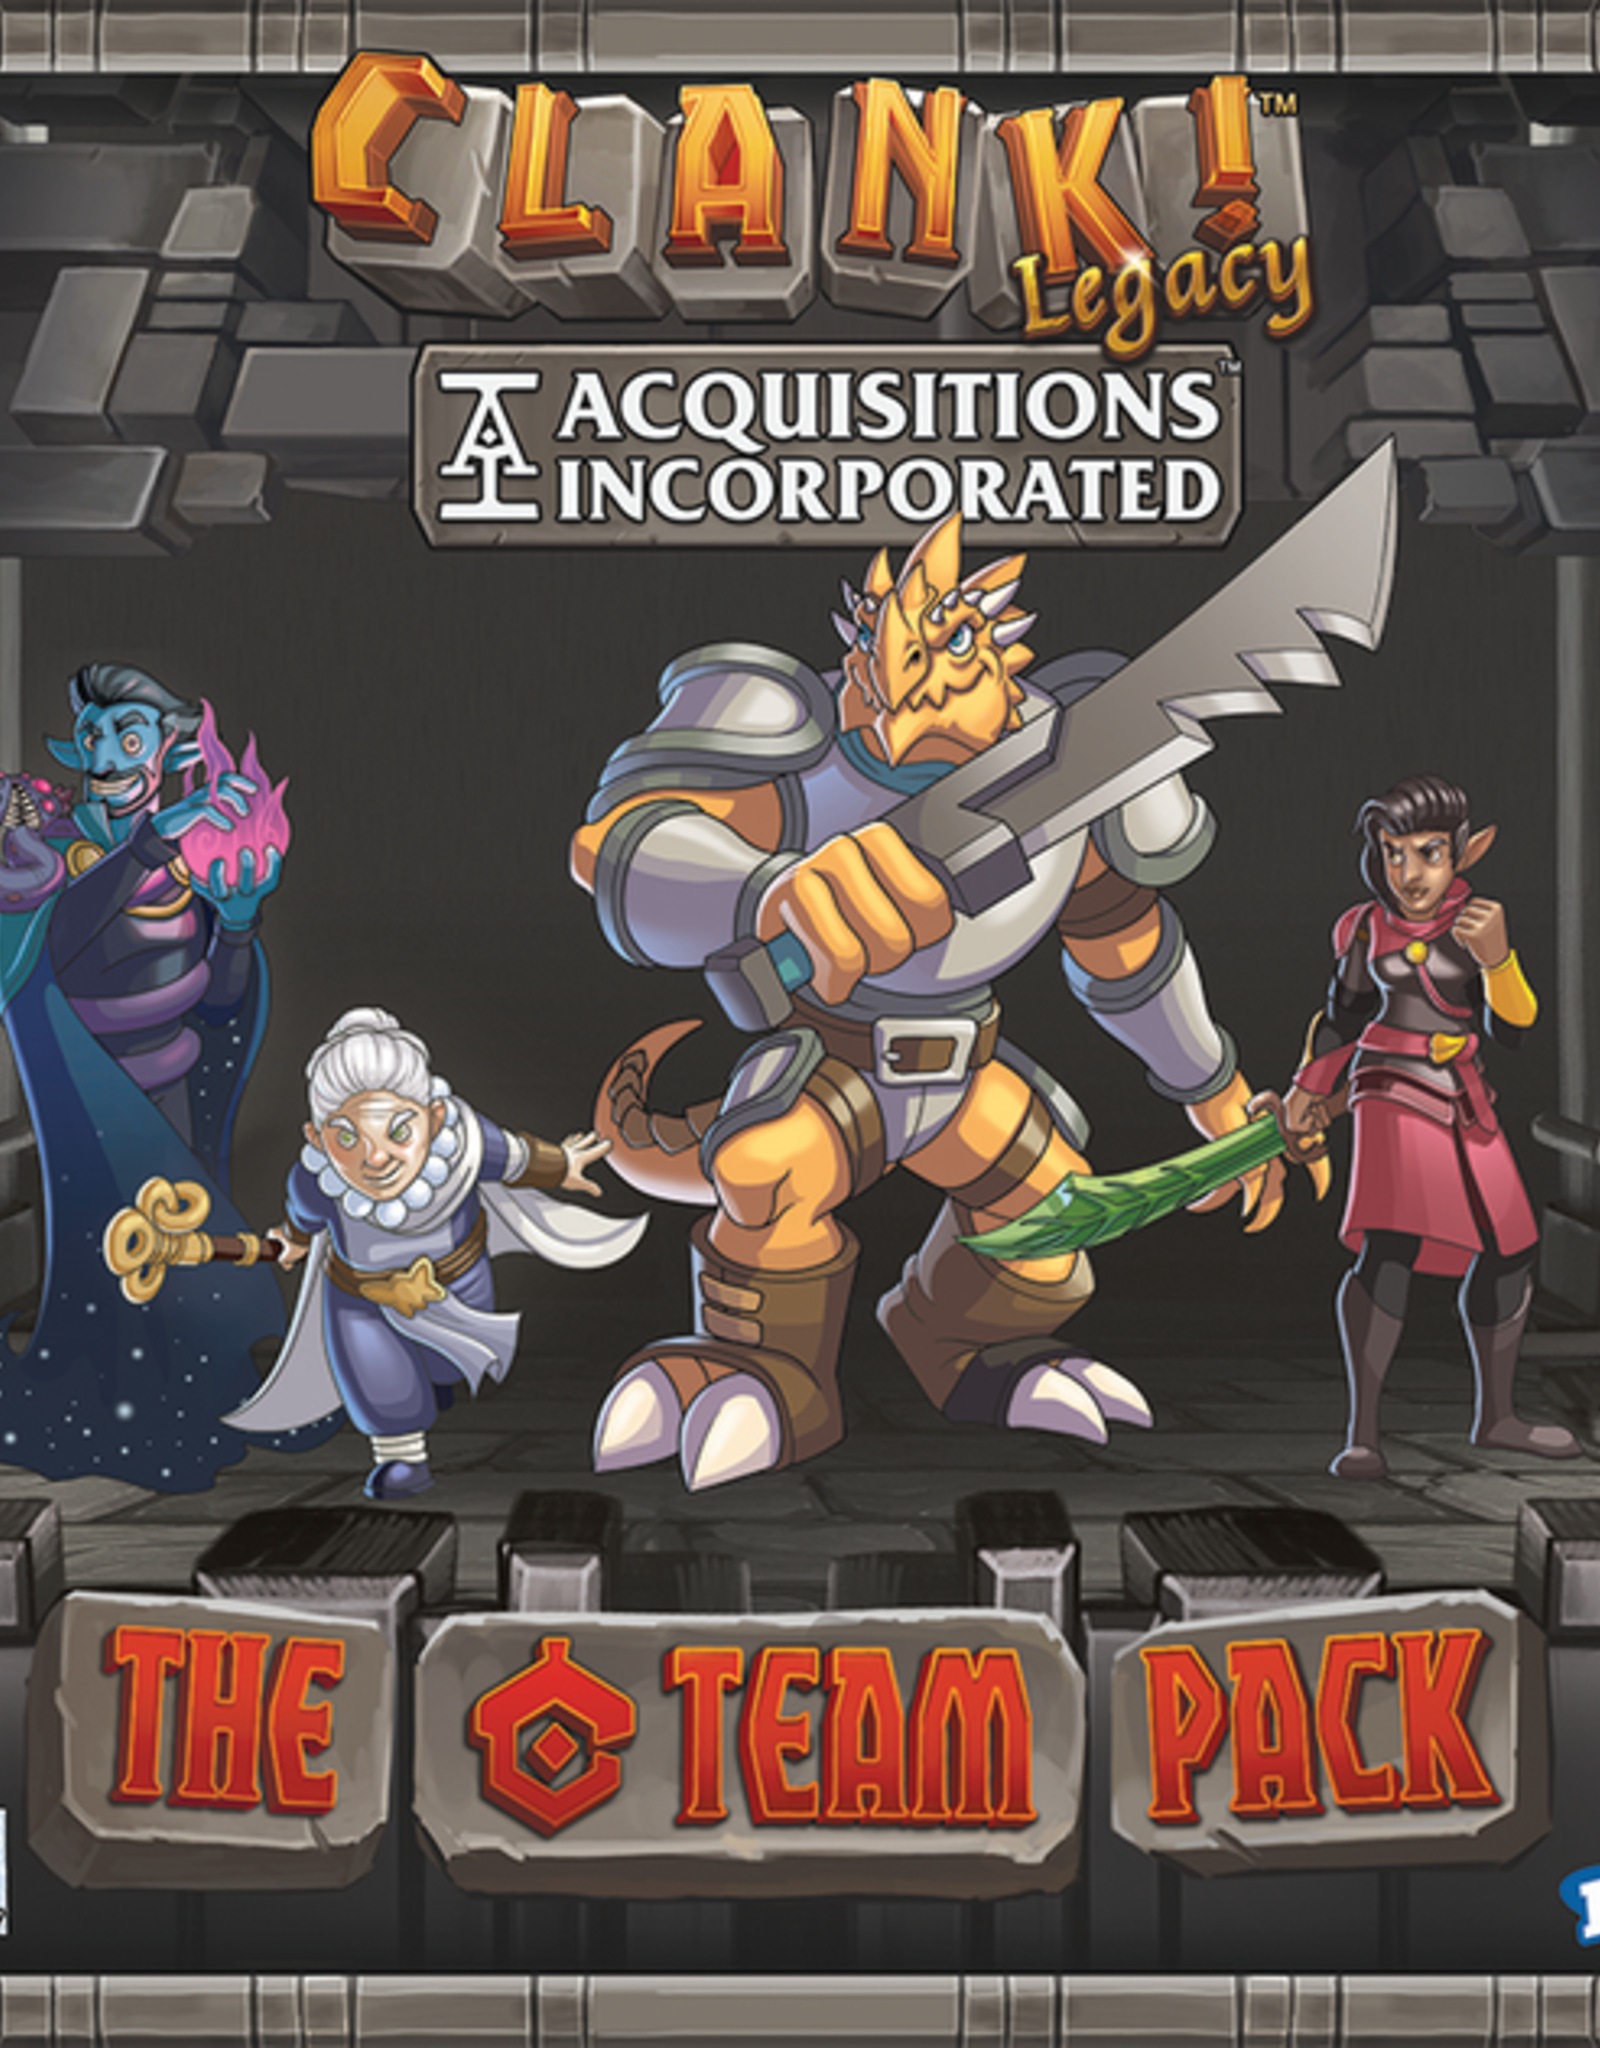 Clank! Legacy: Acquisitions Incorporated: The 'C' Team Pack